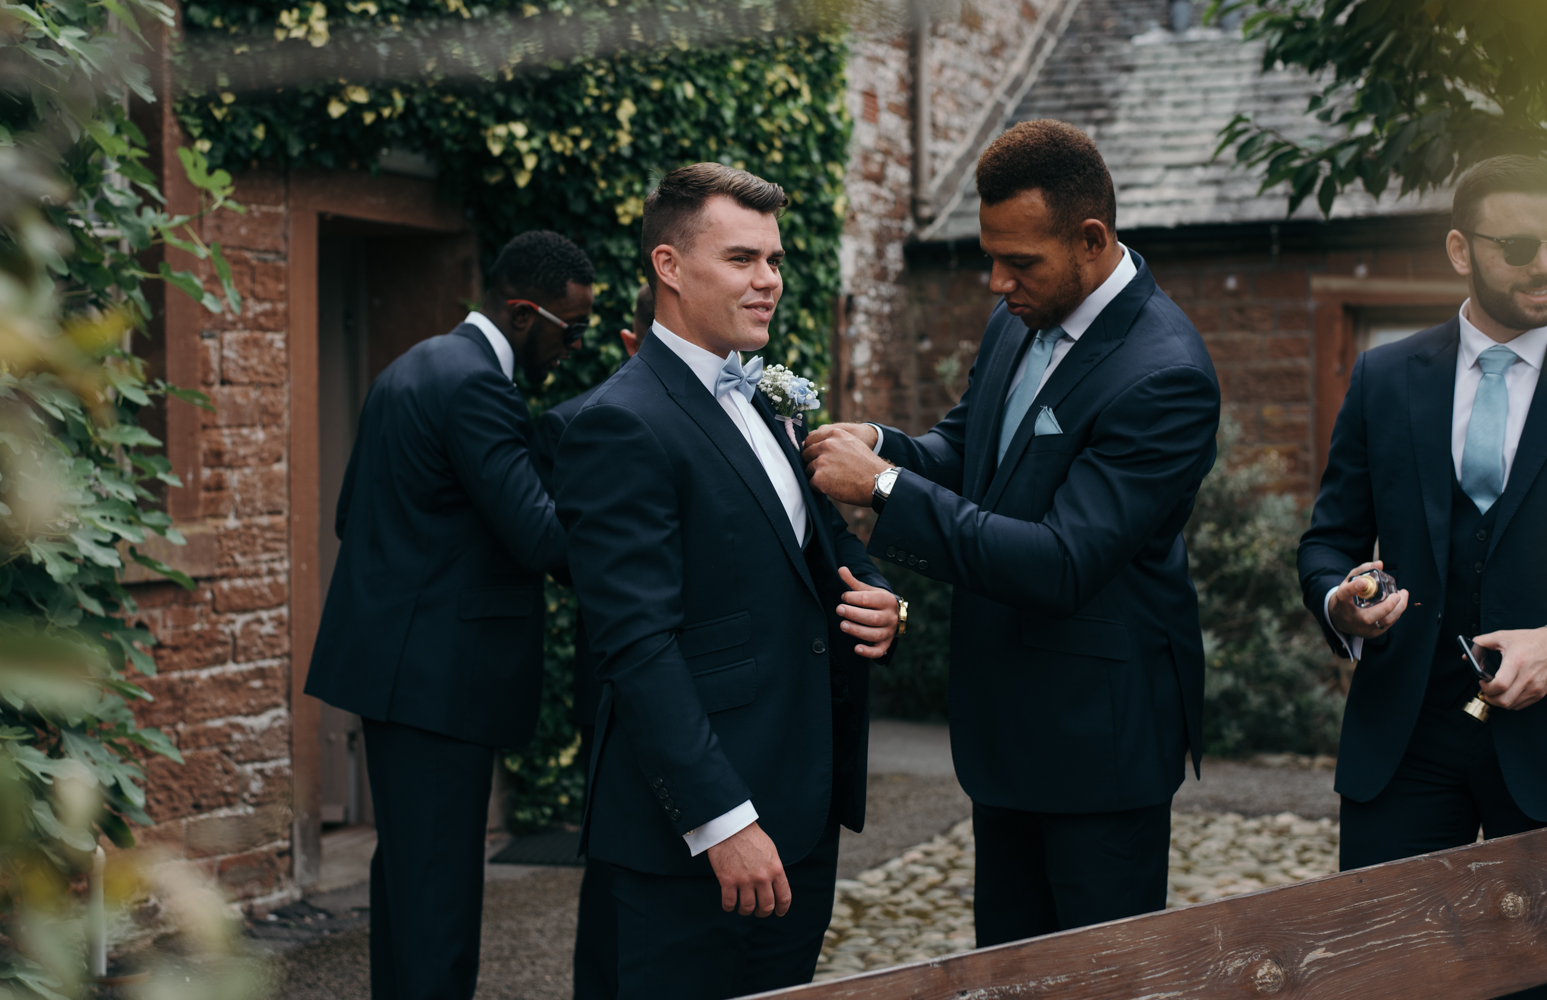 A groom getting some help with his button hole